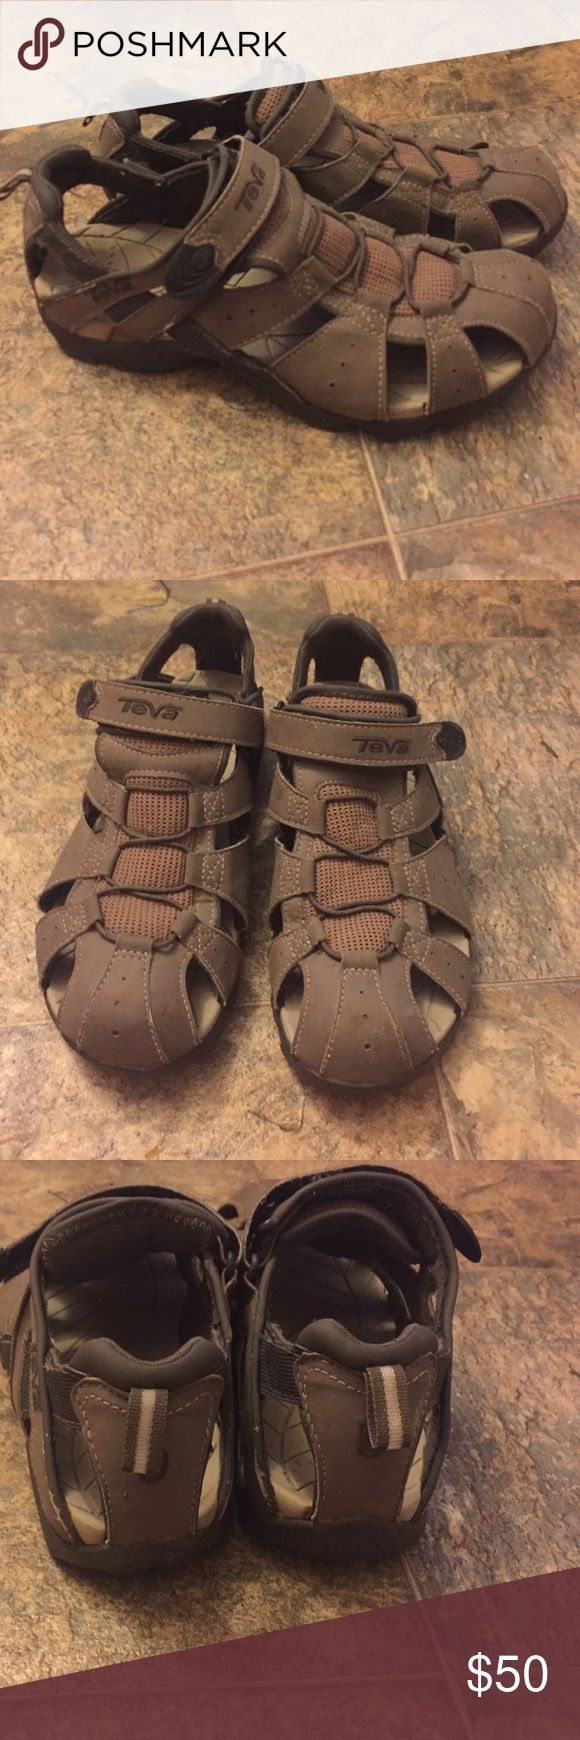 Men's TEVA sandals close toe sandals EUC Teva Shoes Sandals & Flip-Flops